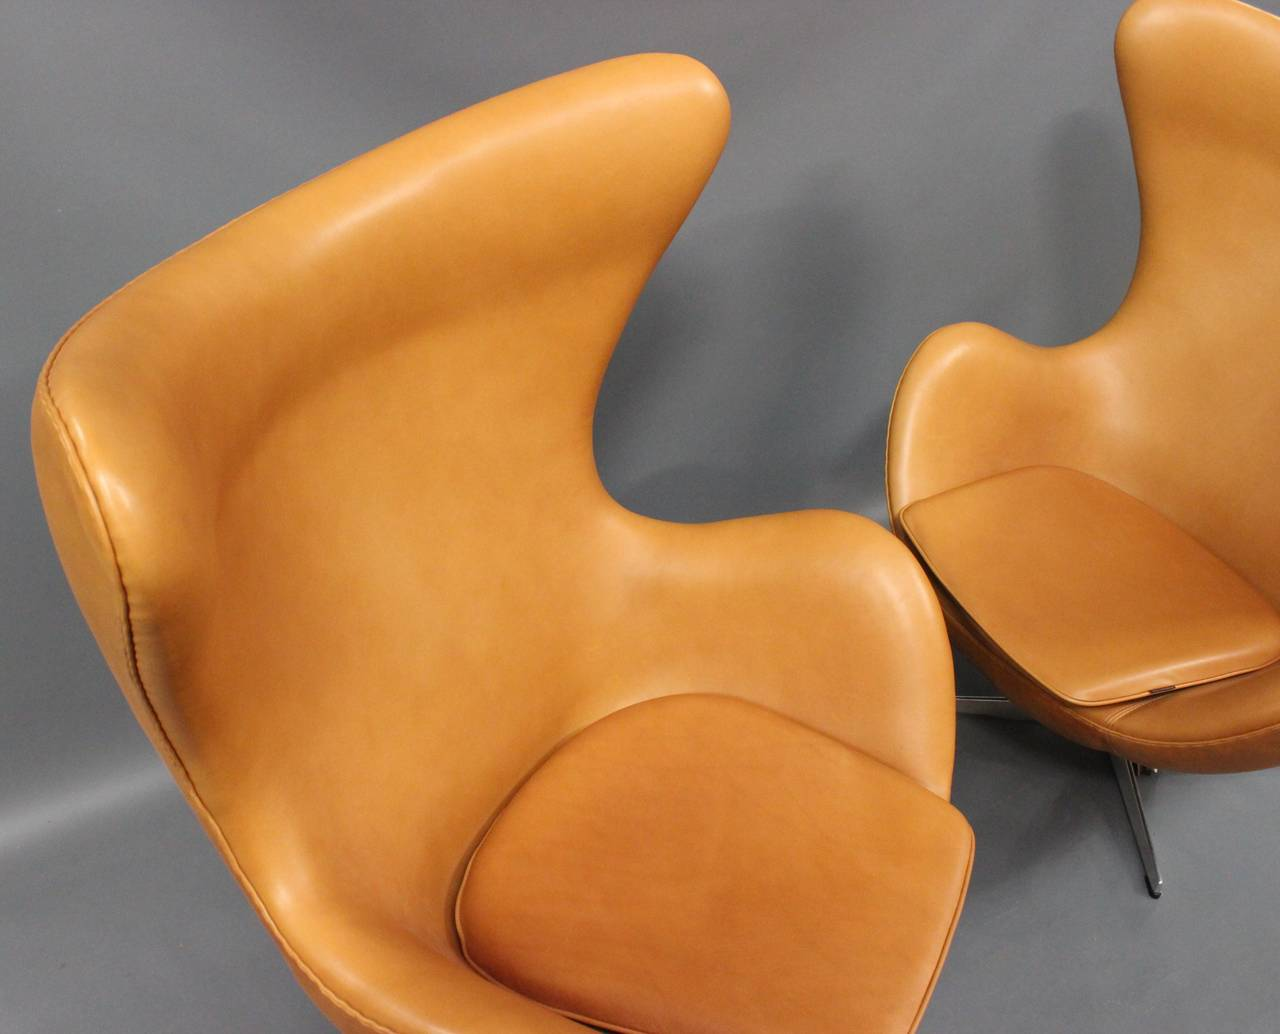 The Egg, model 3316, by Arne Jacobsen,and by Fritz Hansen For Sale 1